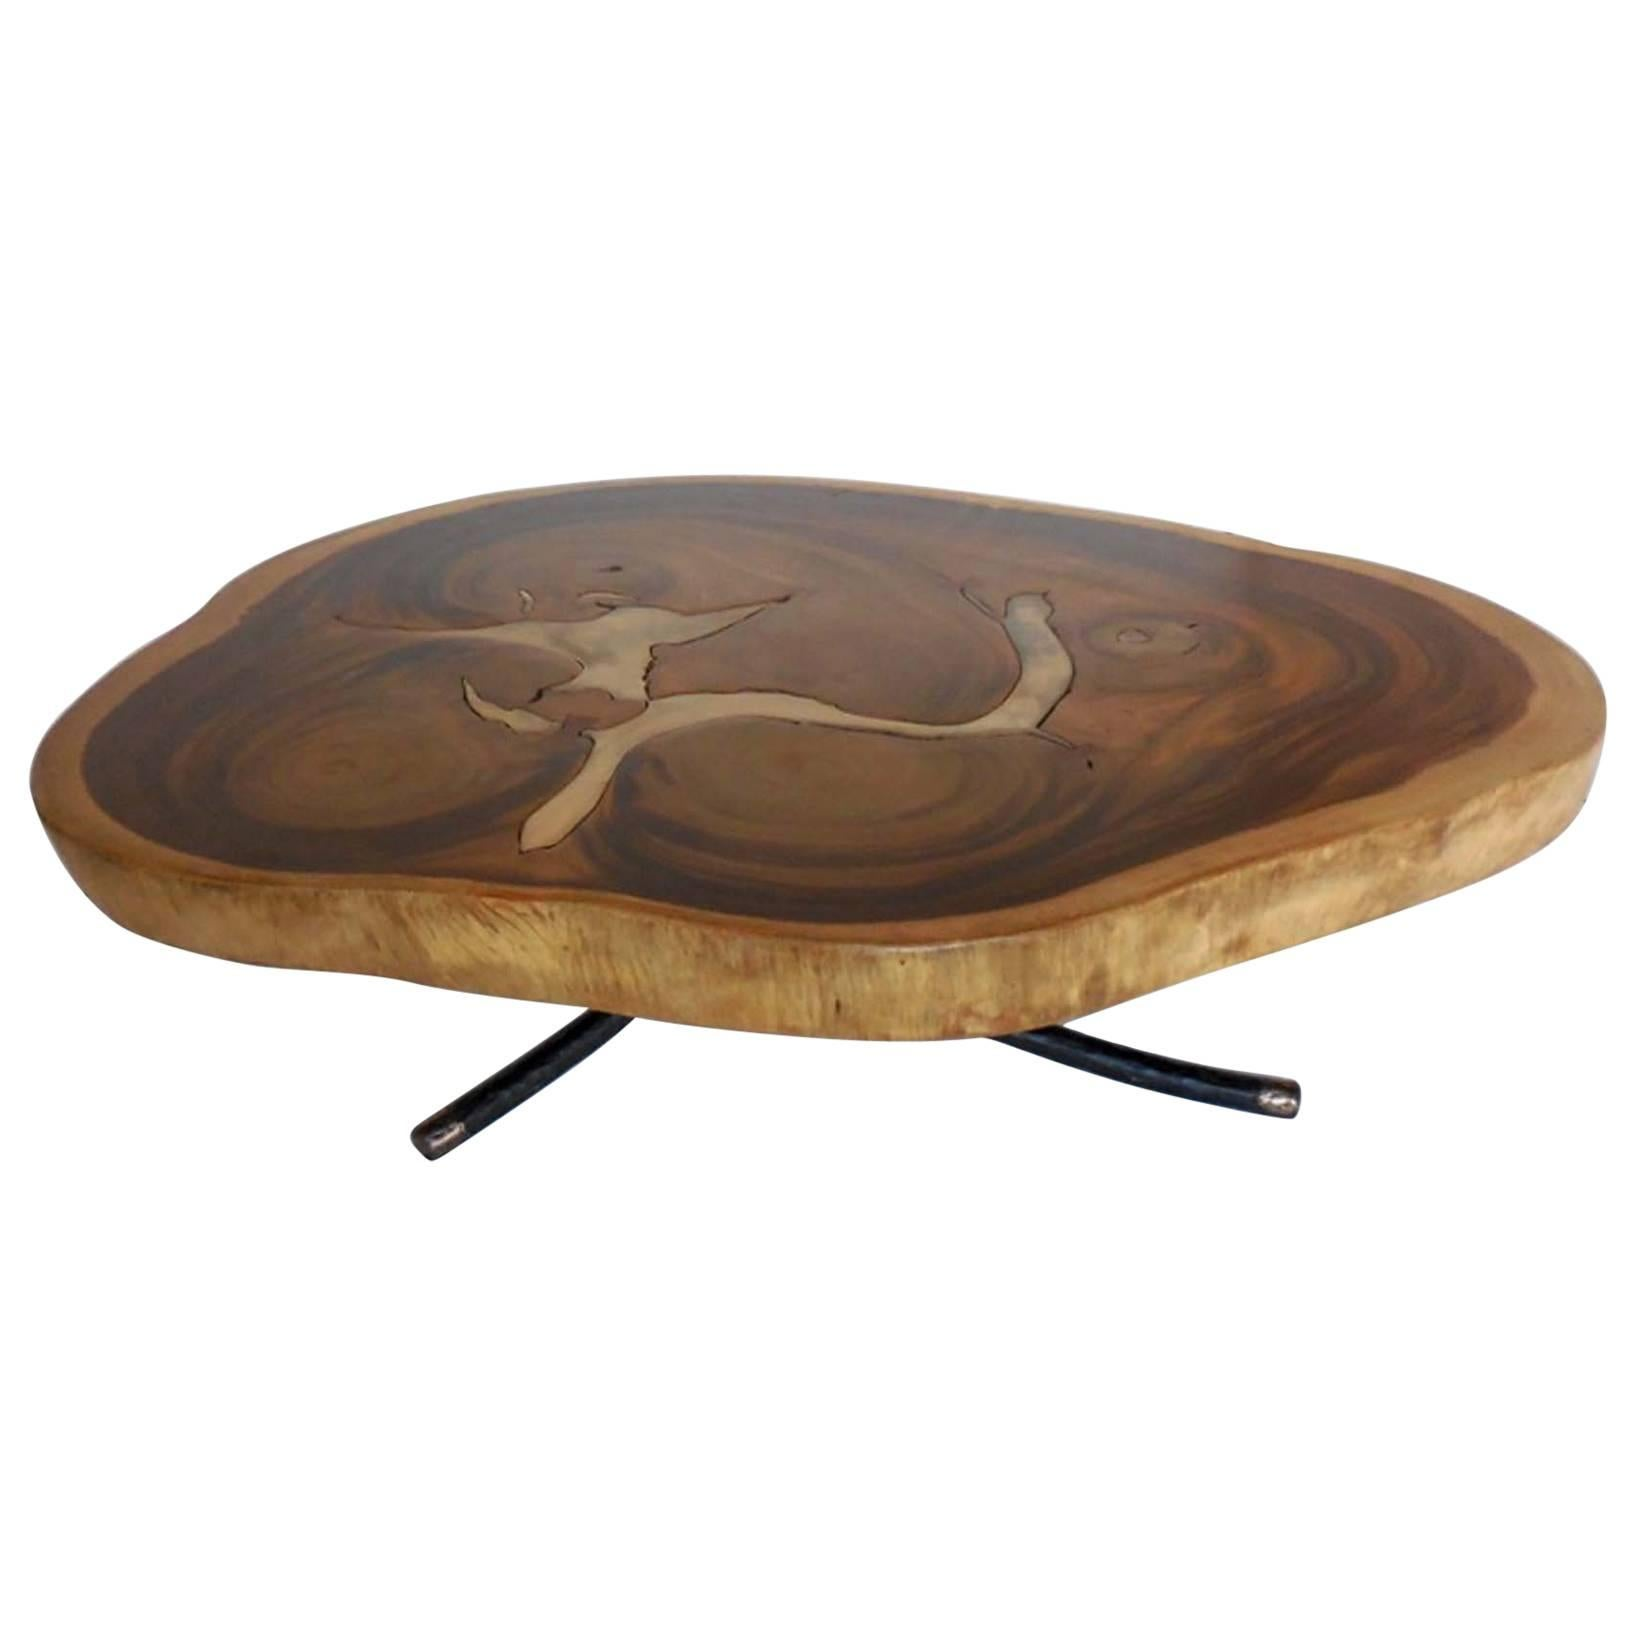 Free Form Organic Shape Coffee Table with Bronze Inlay By Dos